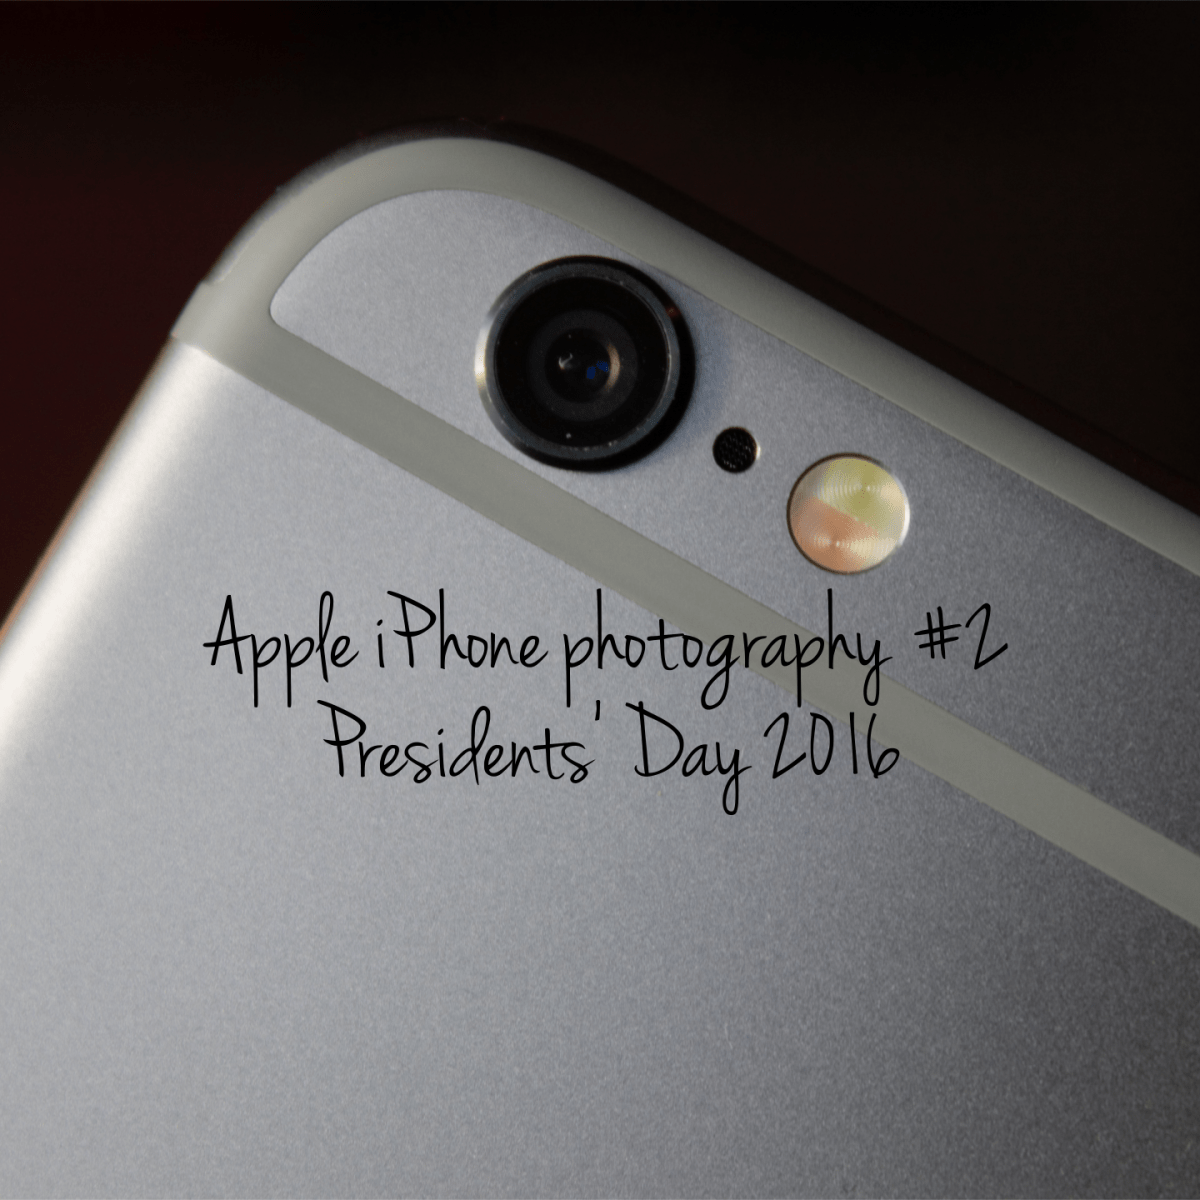 Apple iPhone Photography #2 : Presidents' Day